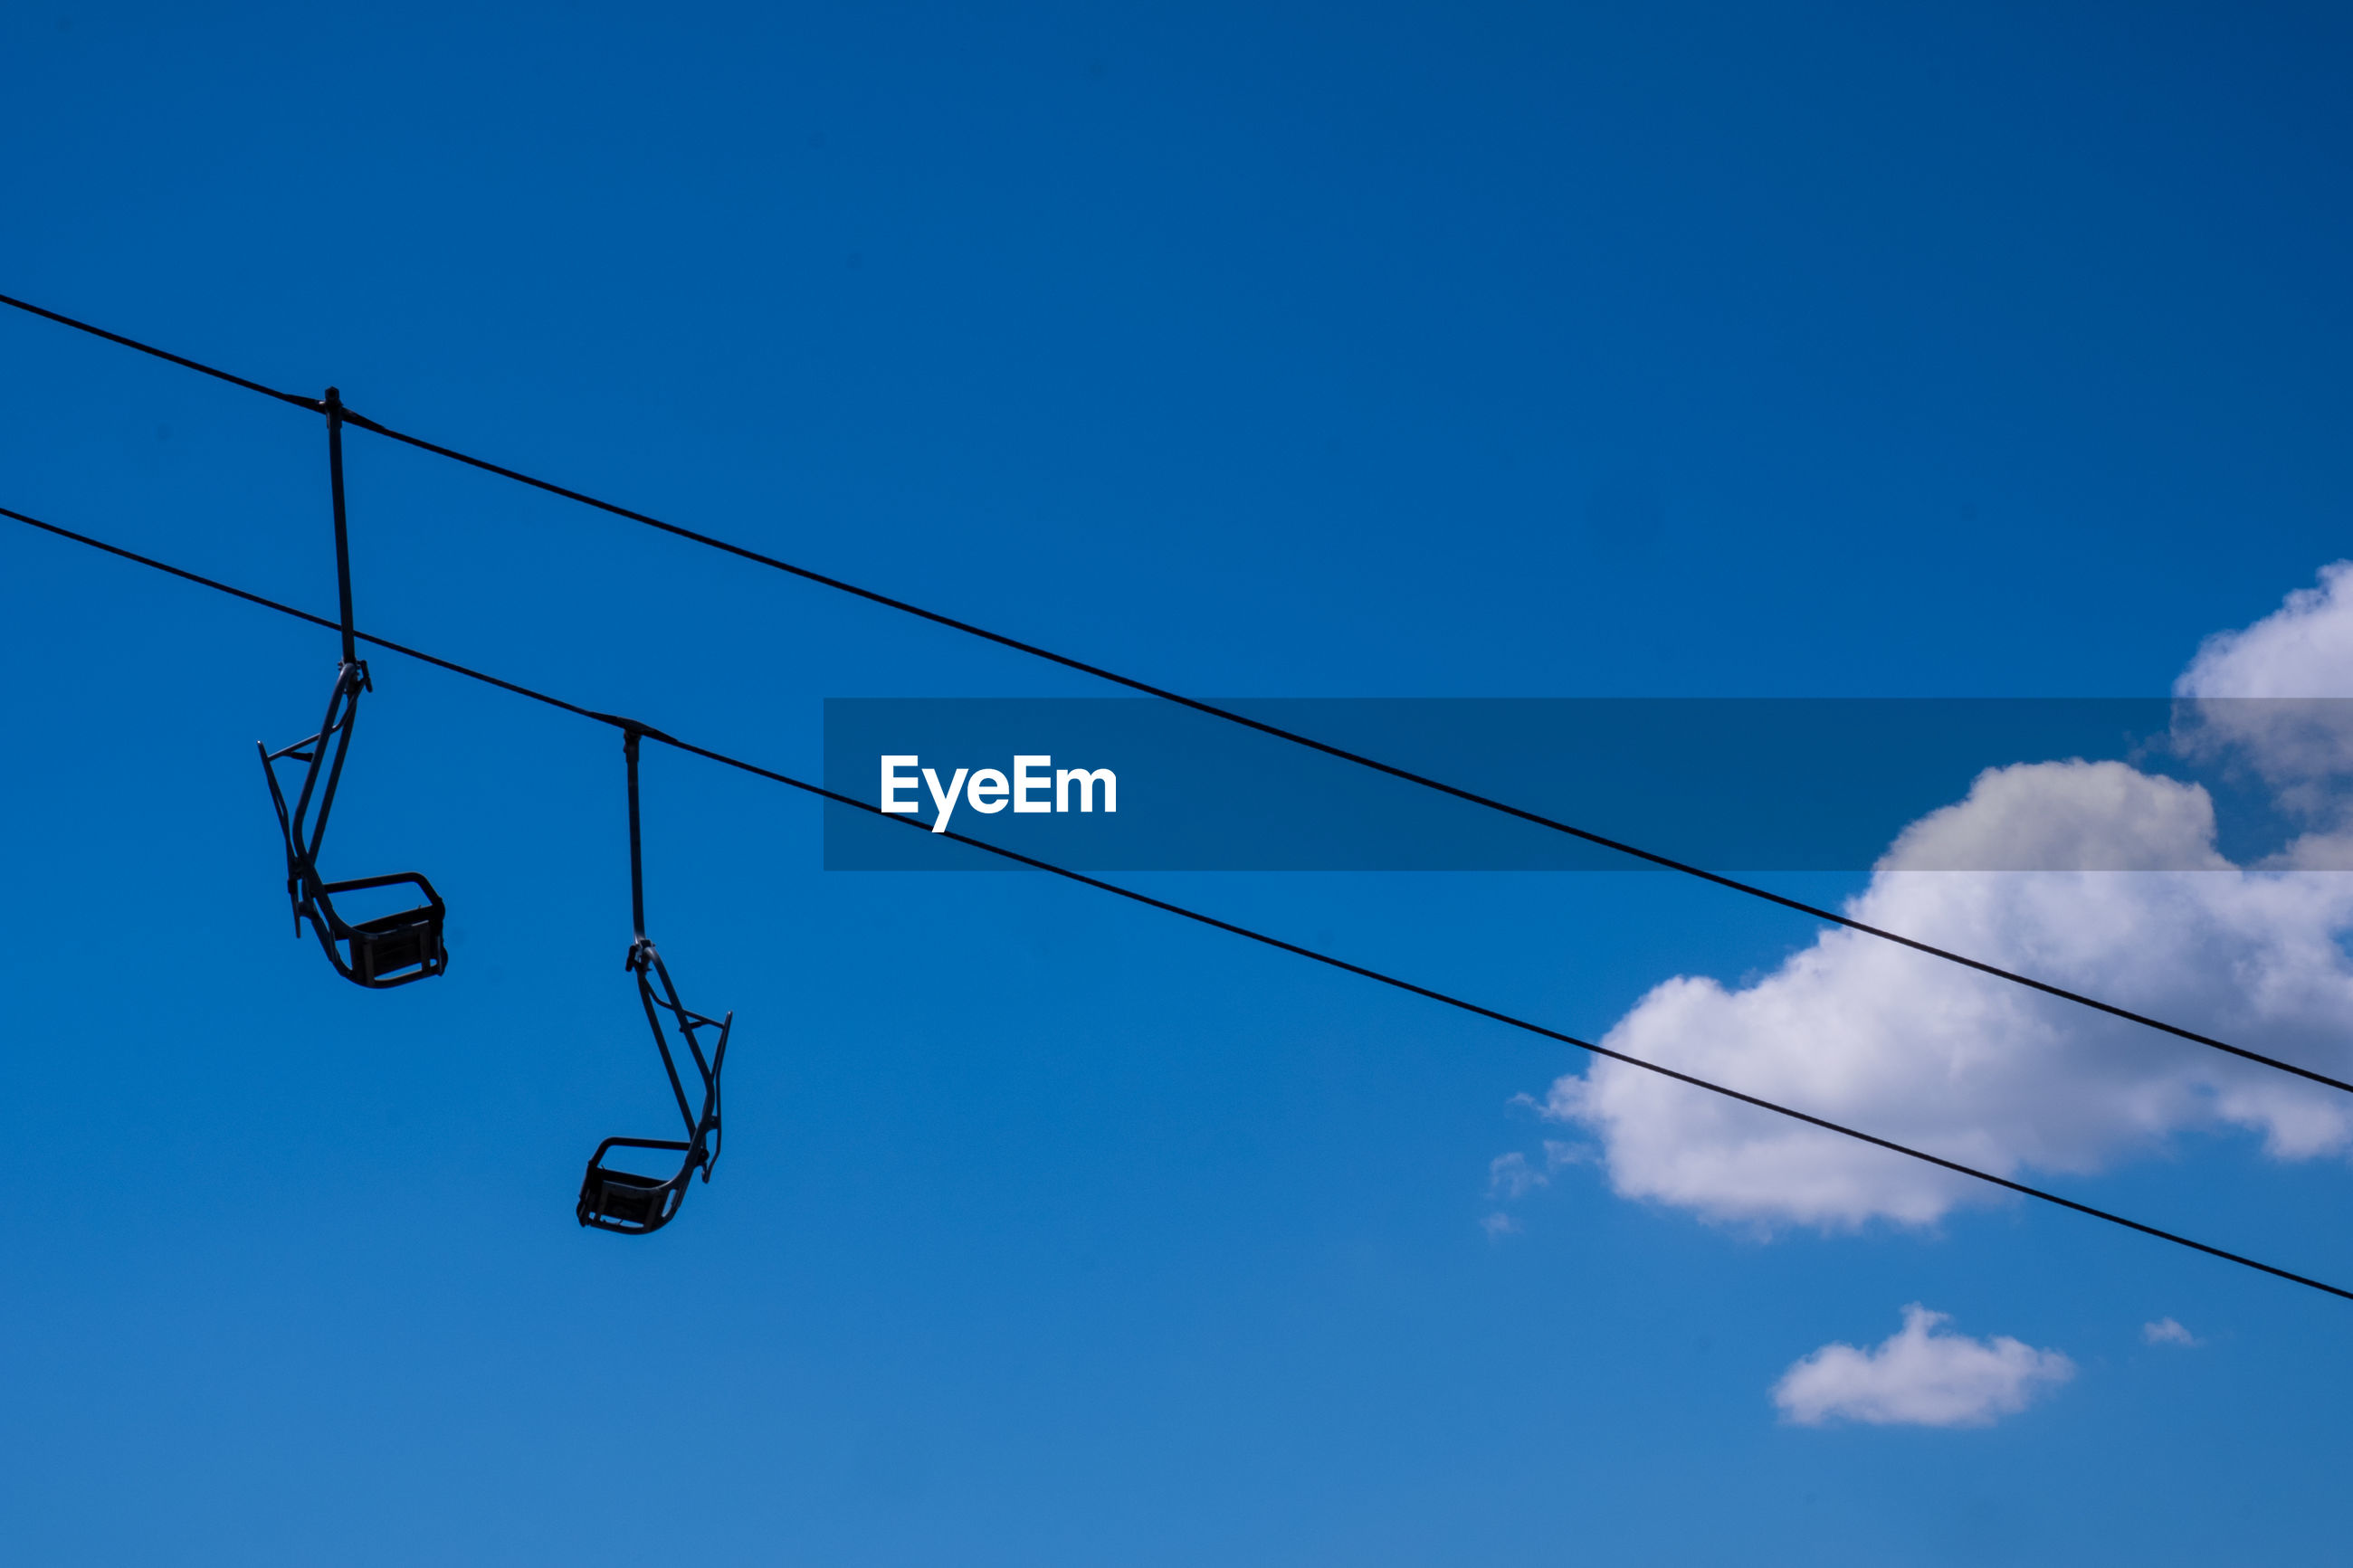 Low angle view of ski lifts against blue sky